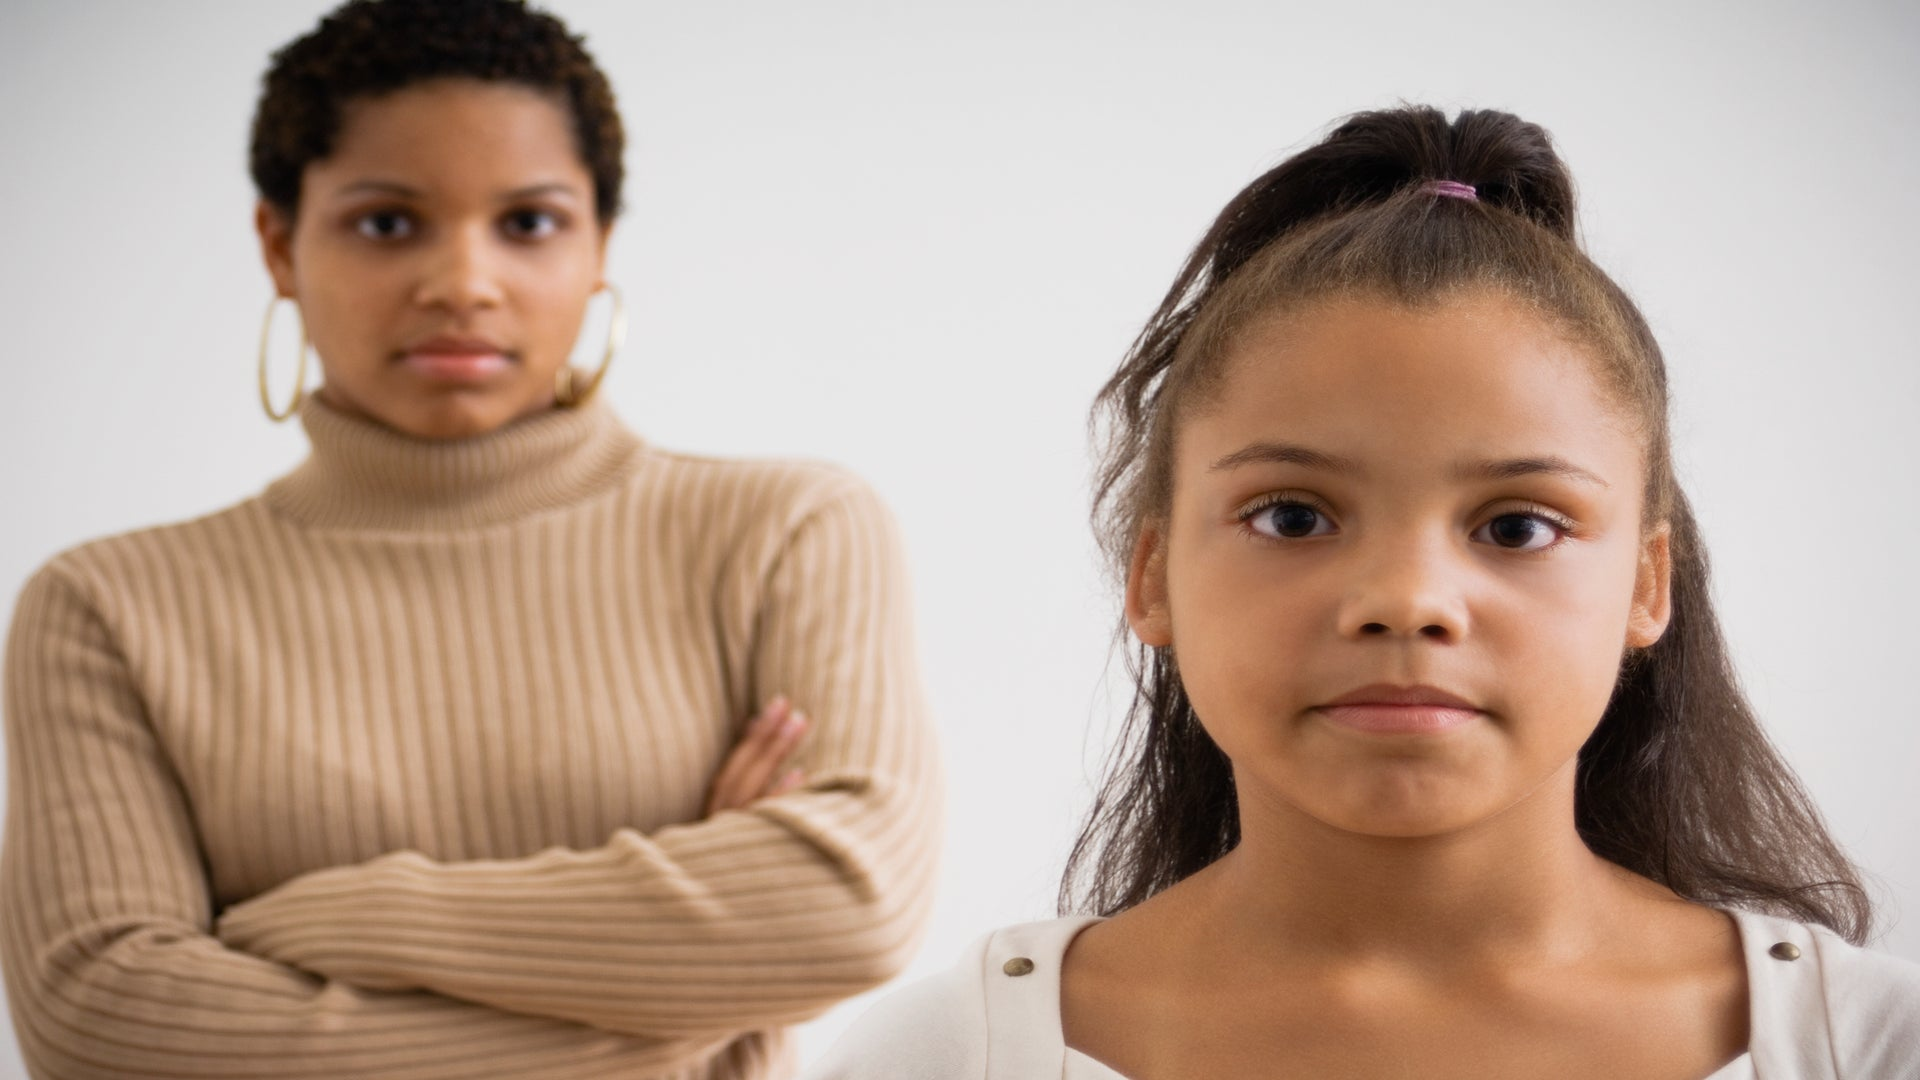 The Write or Die Chick: Bitter Mothers Are Just as Bad as Deadbeat Dads